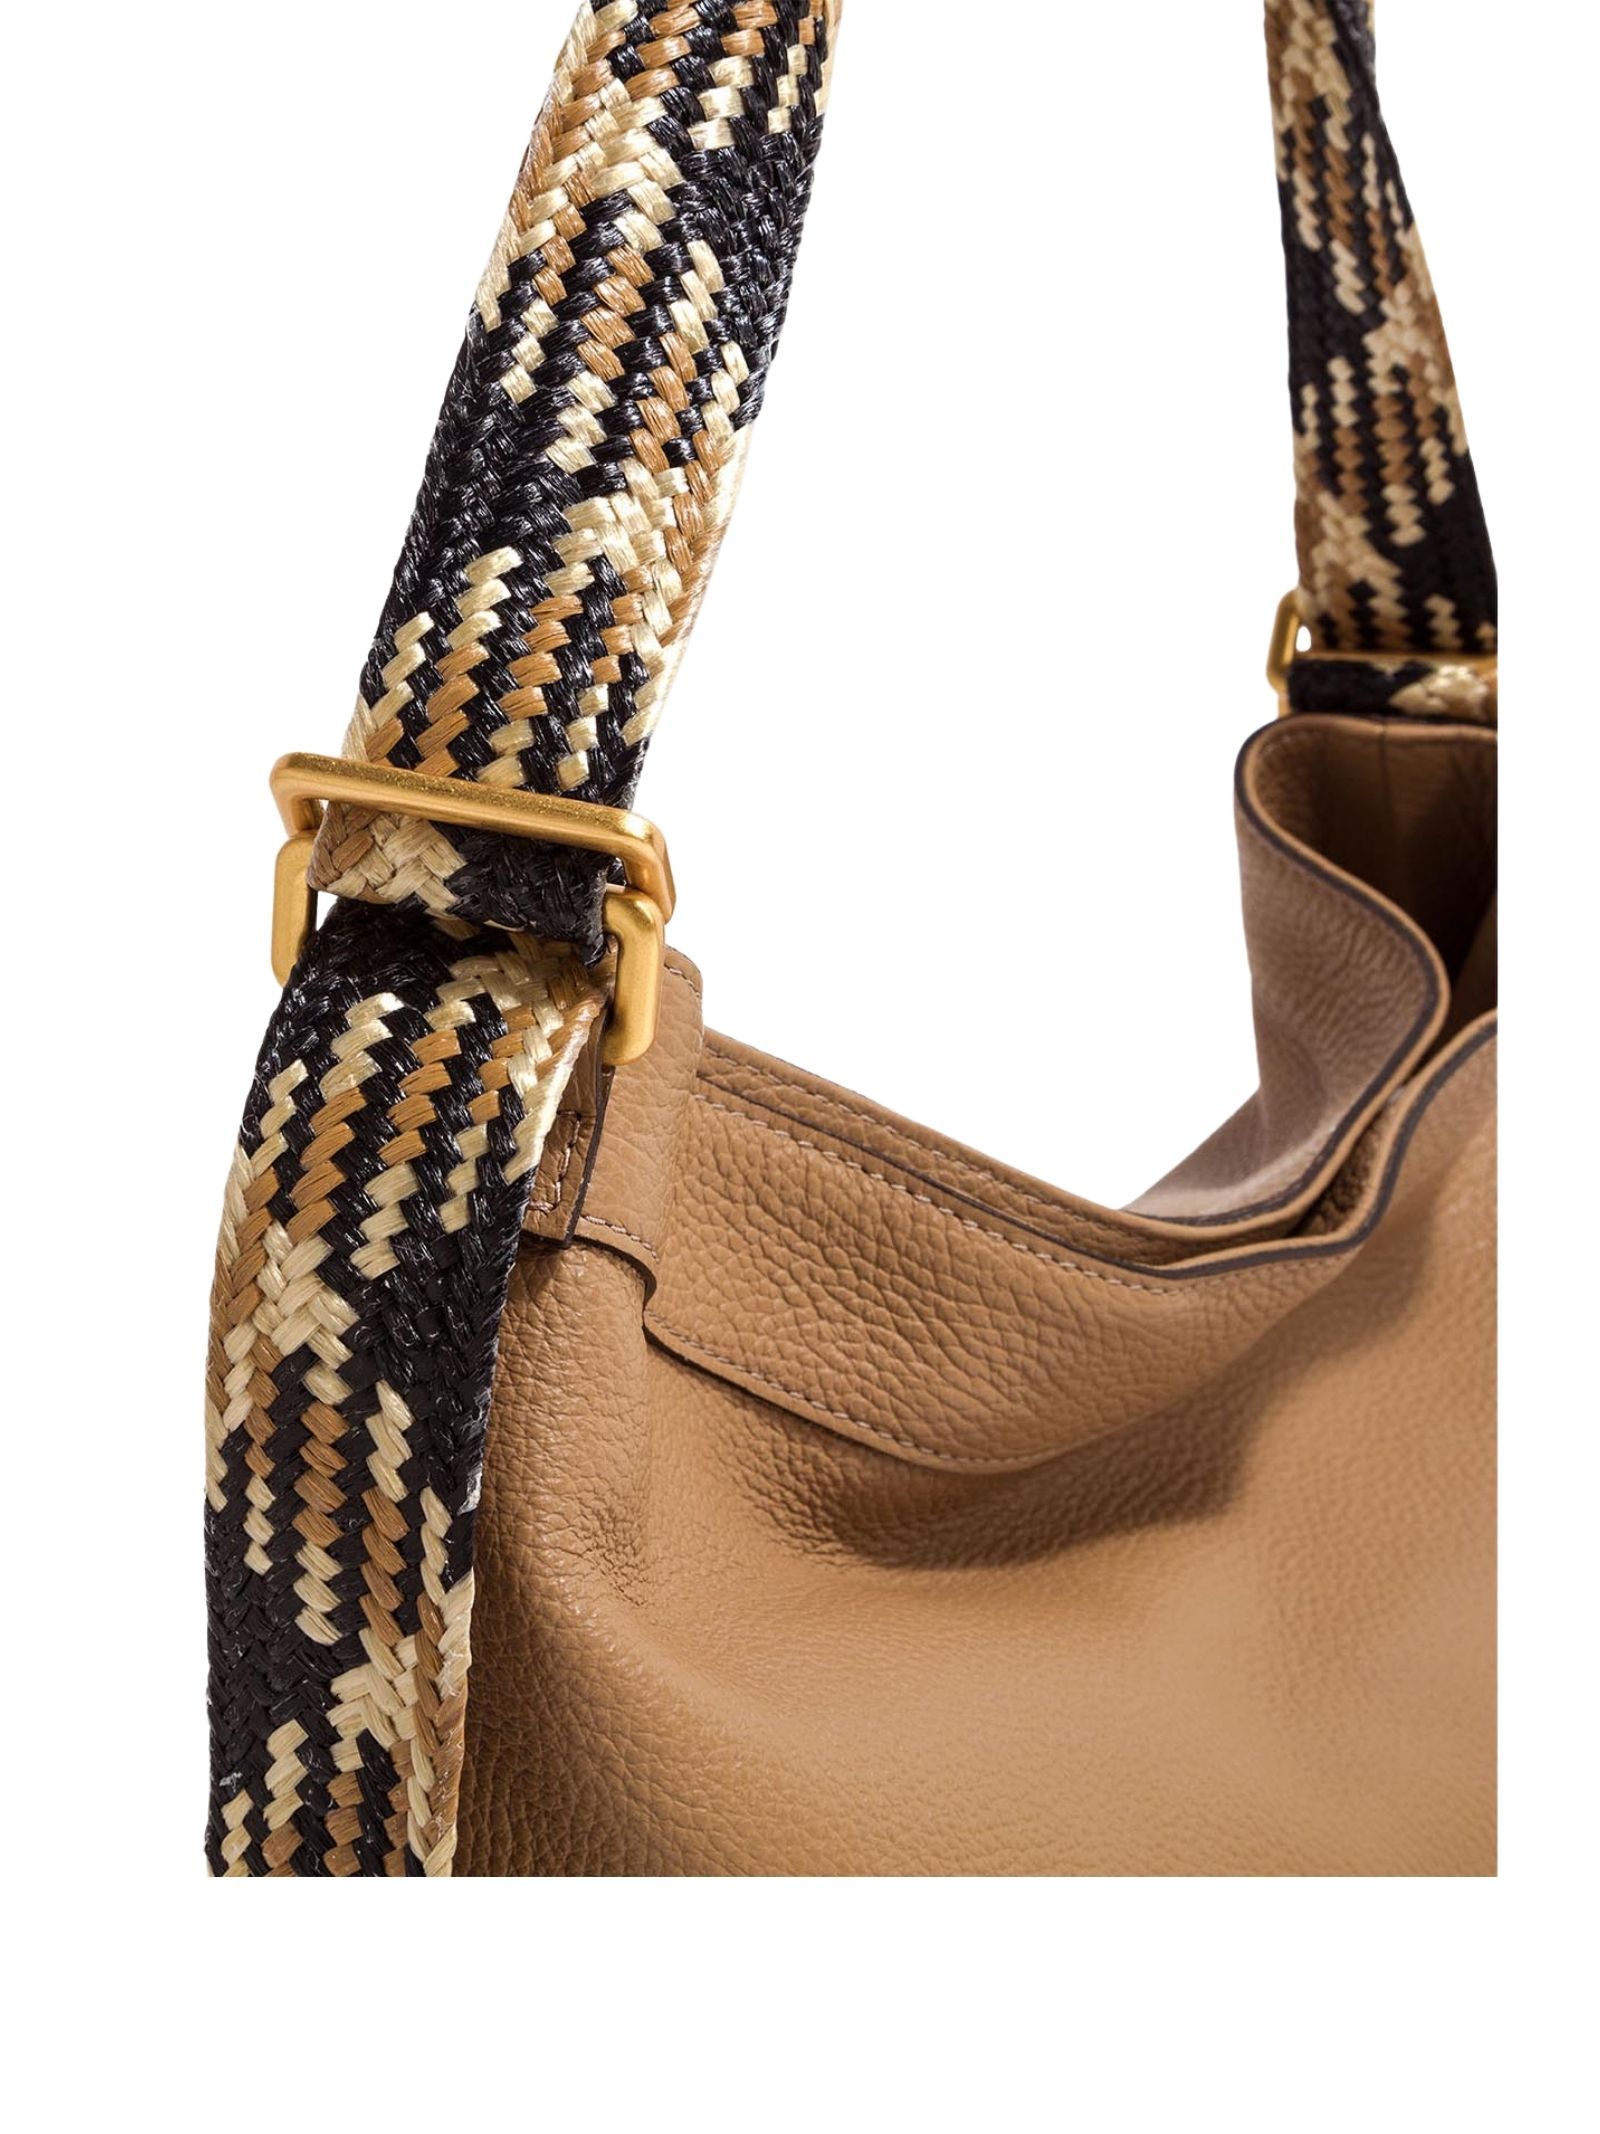 Amaranta Woman Shoulder Bag In Cappuccino Leather With Multicolored Fabric Handle Gianni Chiarini   Bags and backpacks   BS85210226